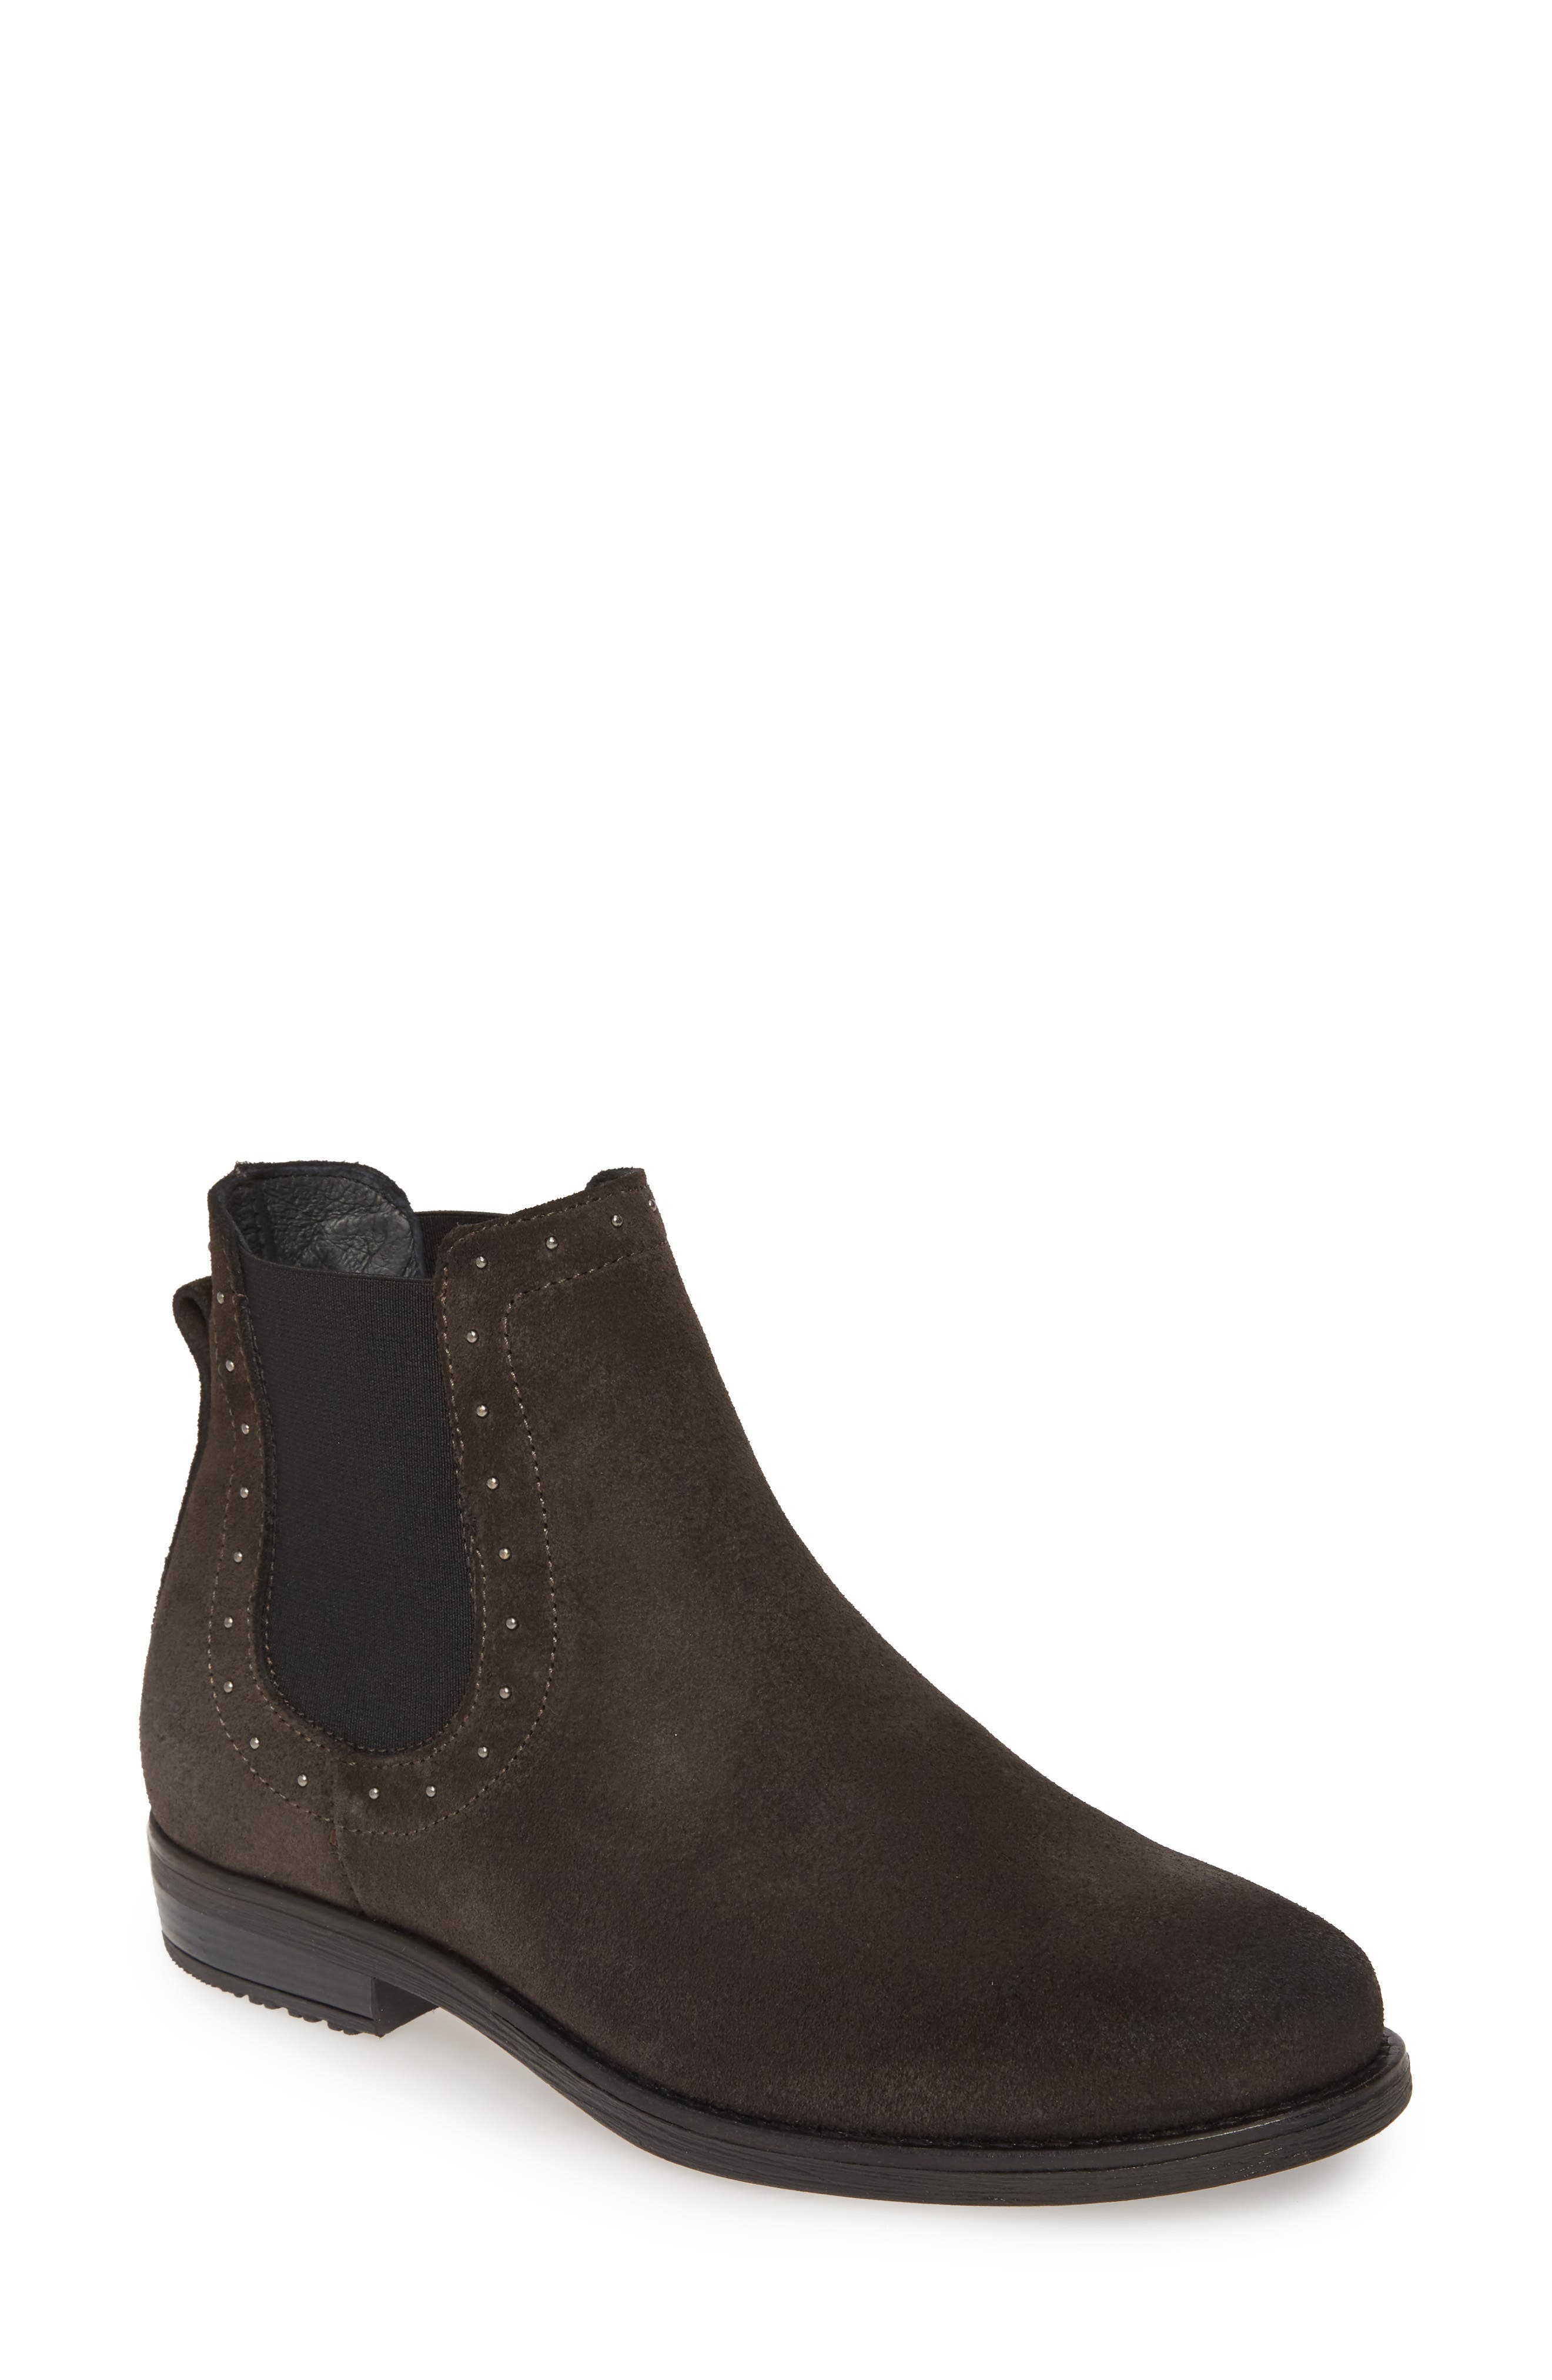 Bos. & Co. Risk Chelsea Boot, Grey